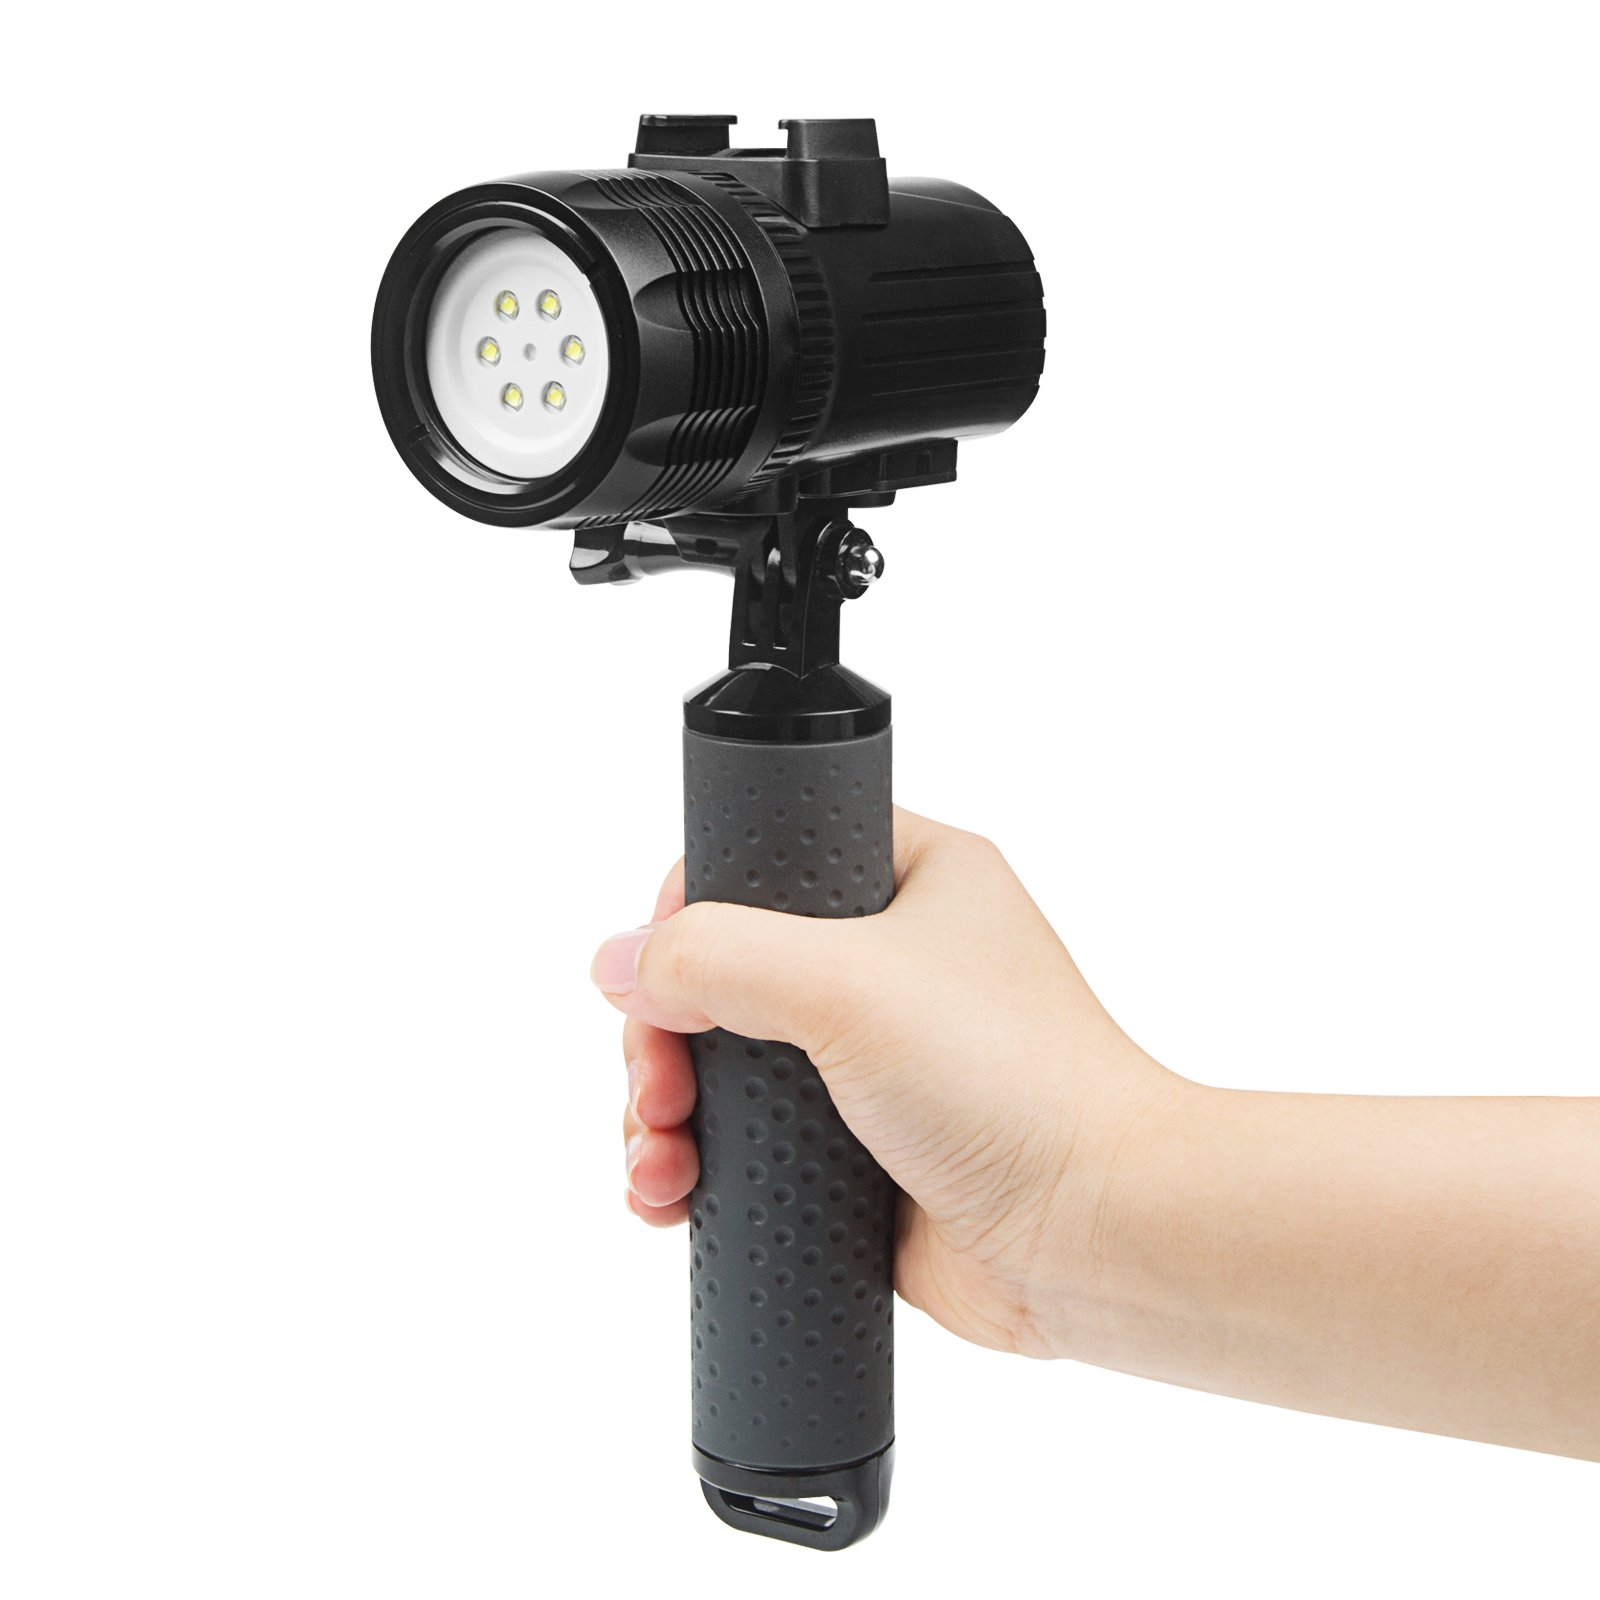 D&F Waterproof Torch LED Light 1000LM Diving 60m Video Flashlight Lamp for GoPro Hero 7/6/5/4/HERO(2018), AKASO,Campark,Crosstour,APEMAN and Other Action Sports Camera by D&F